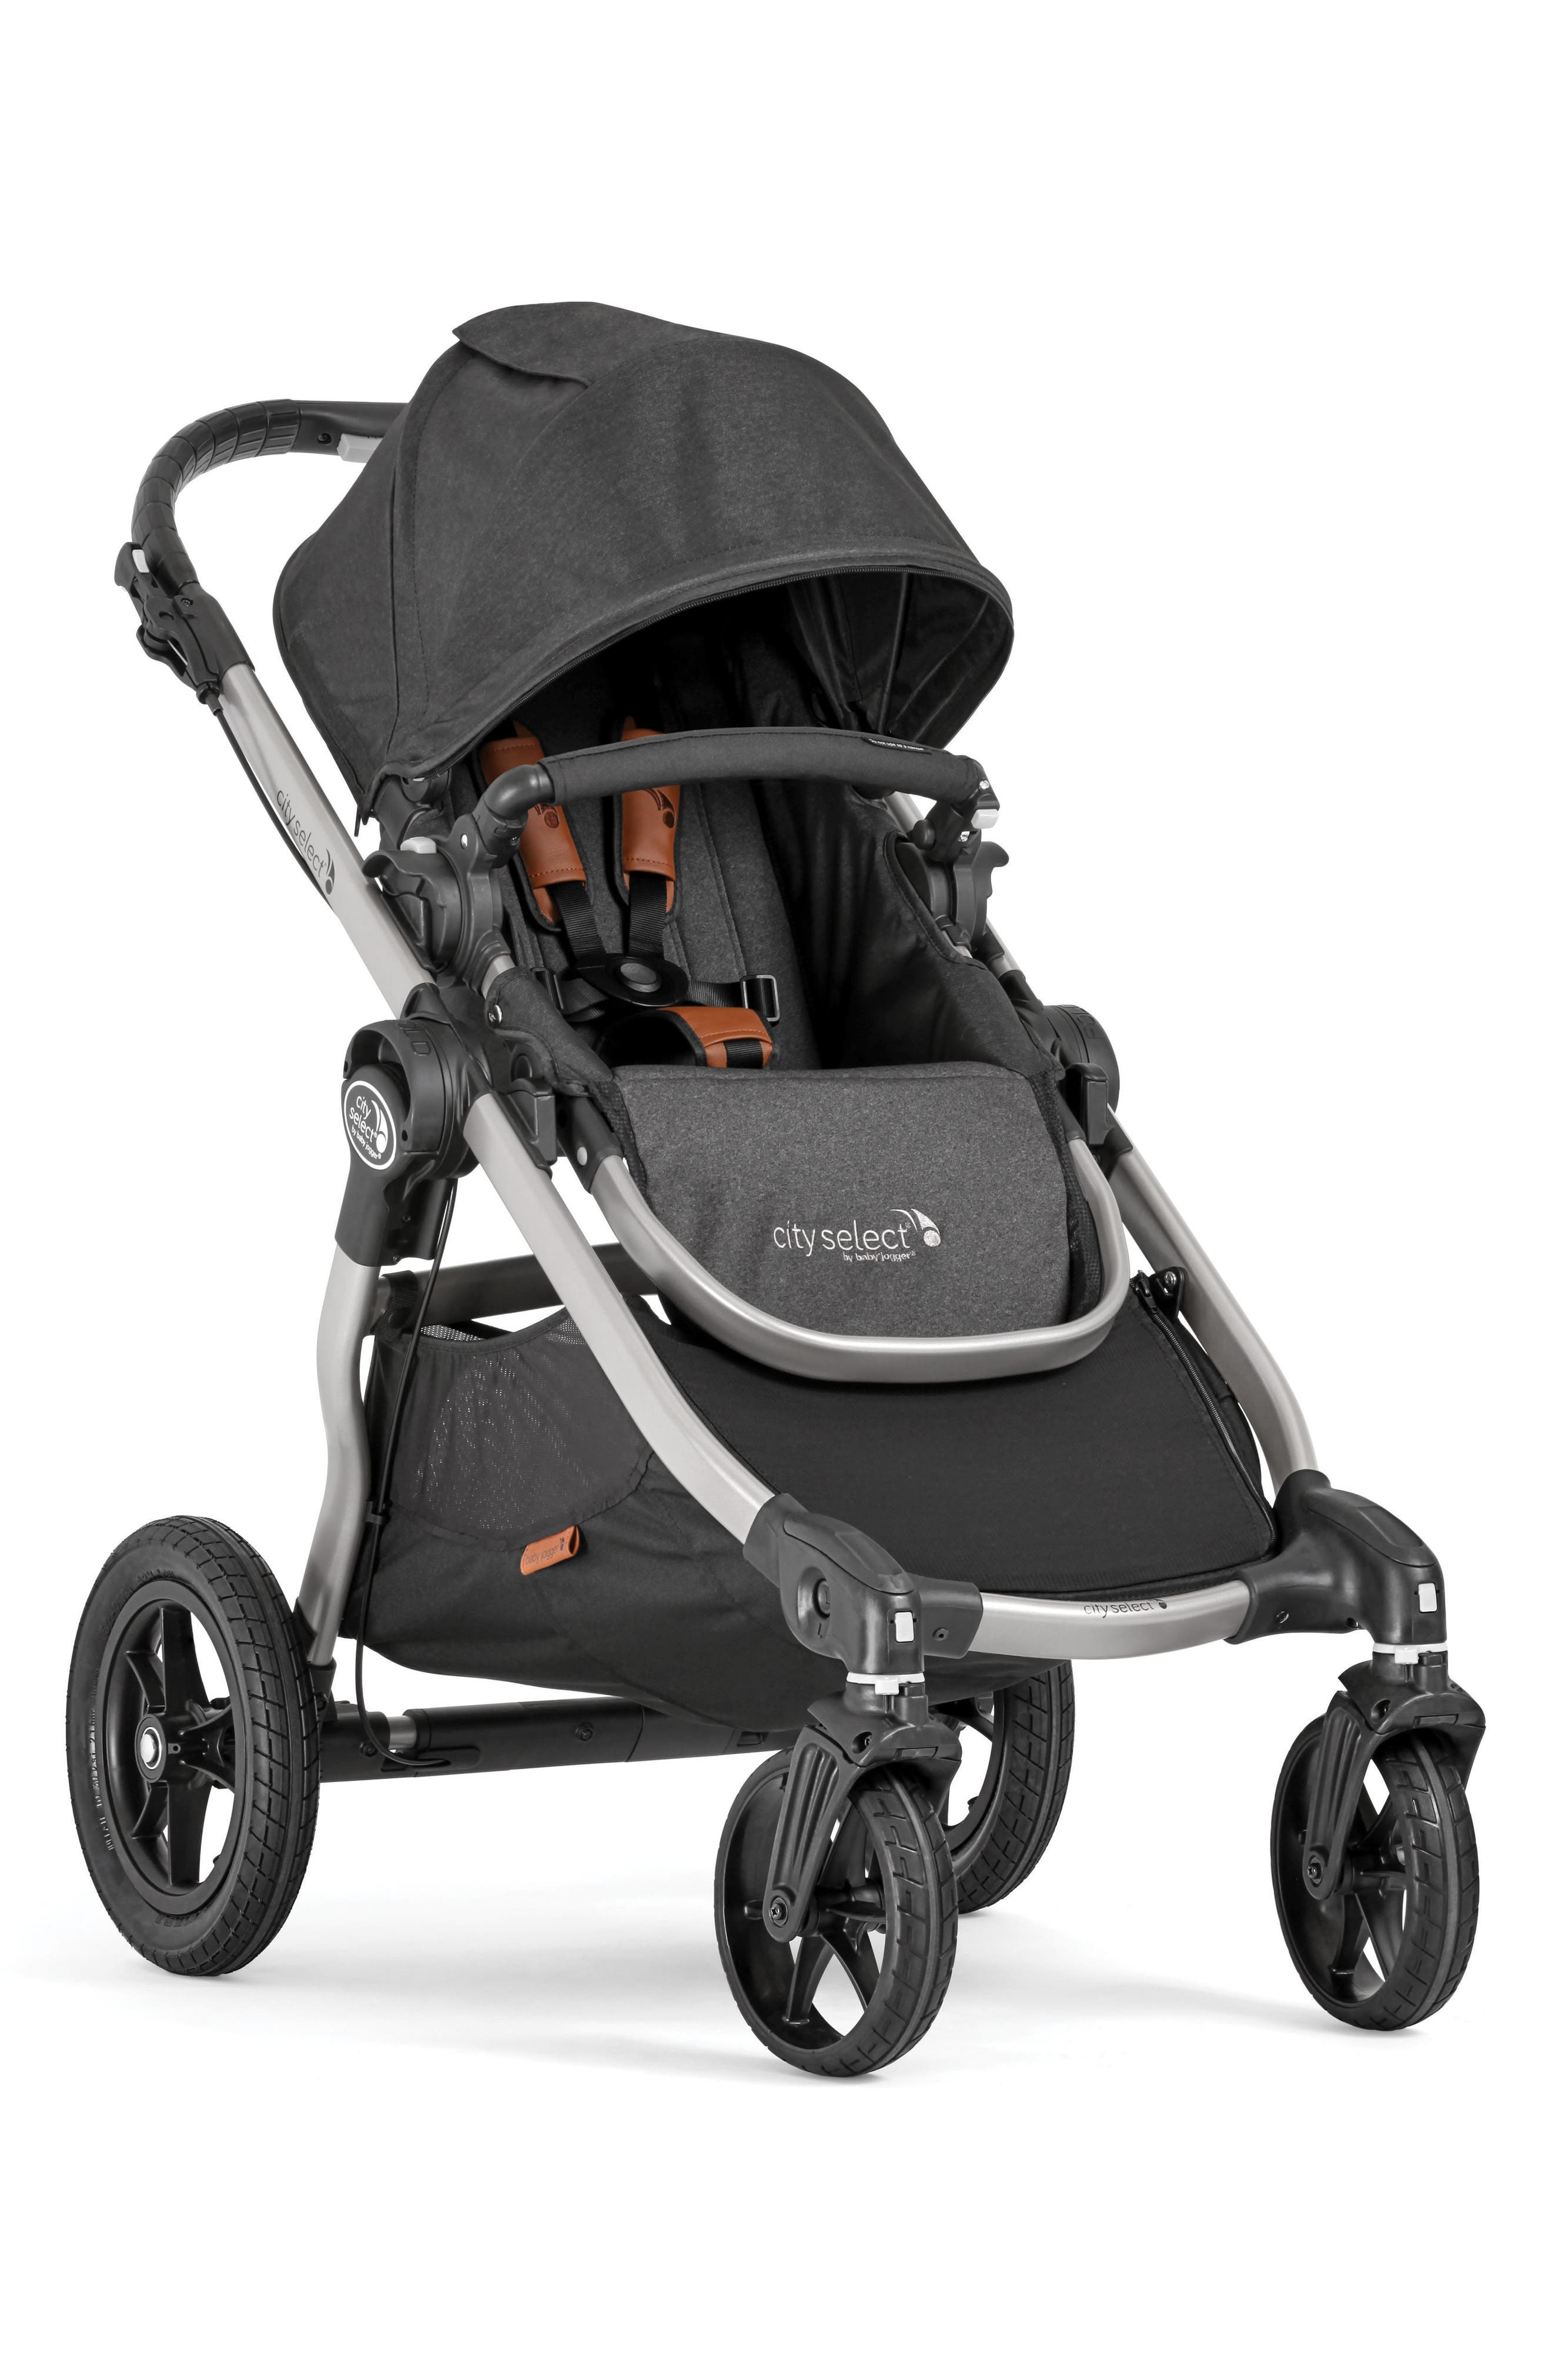 City Select<sup>®</sup> 2018 Special Edition 10-Year Anniversary Stroller,                         Main,                         color, 020